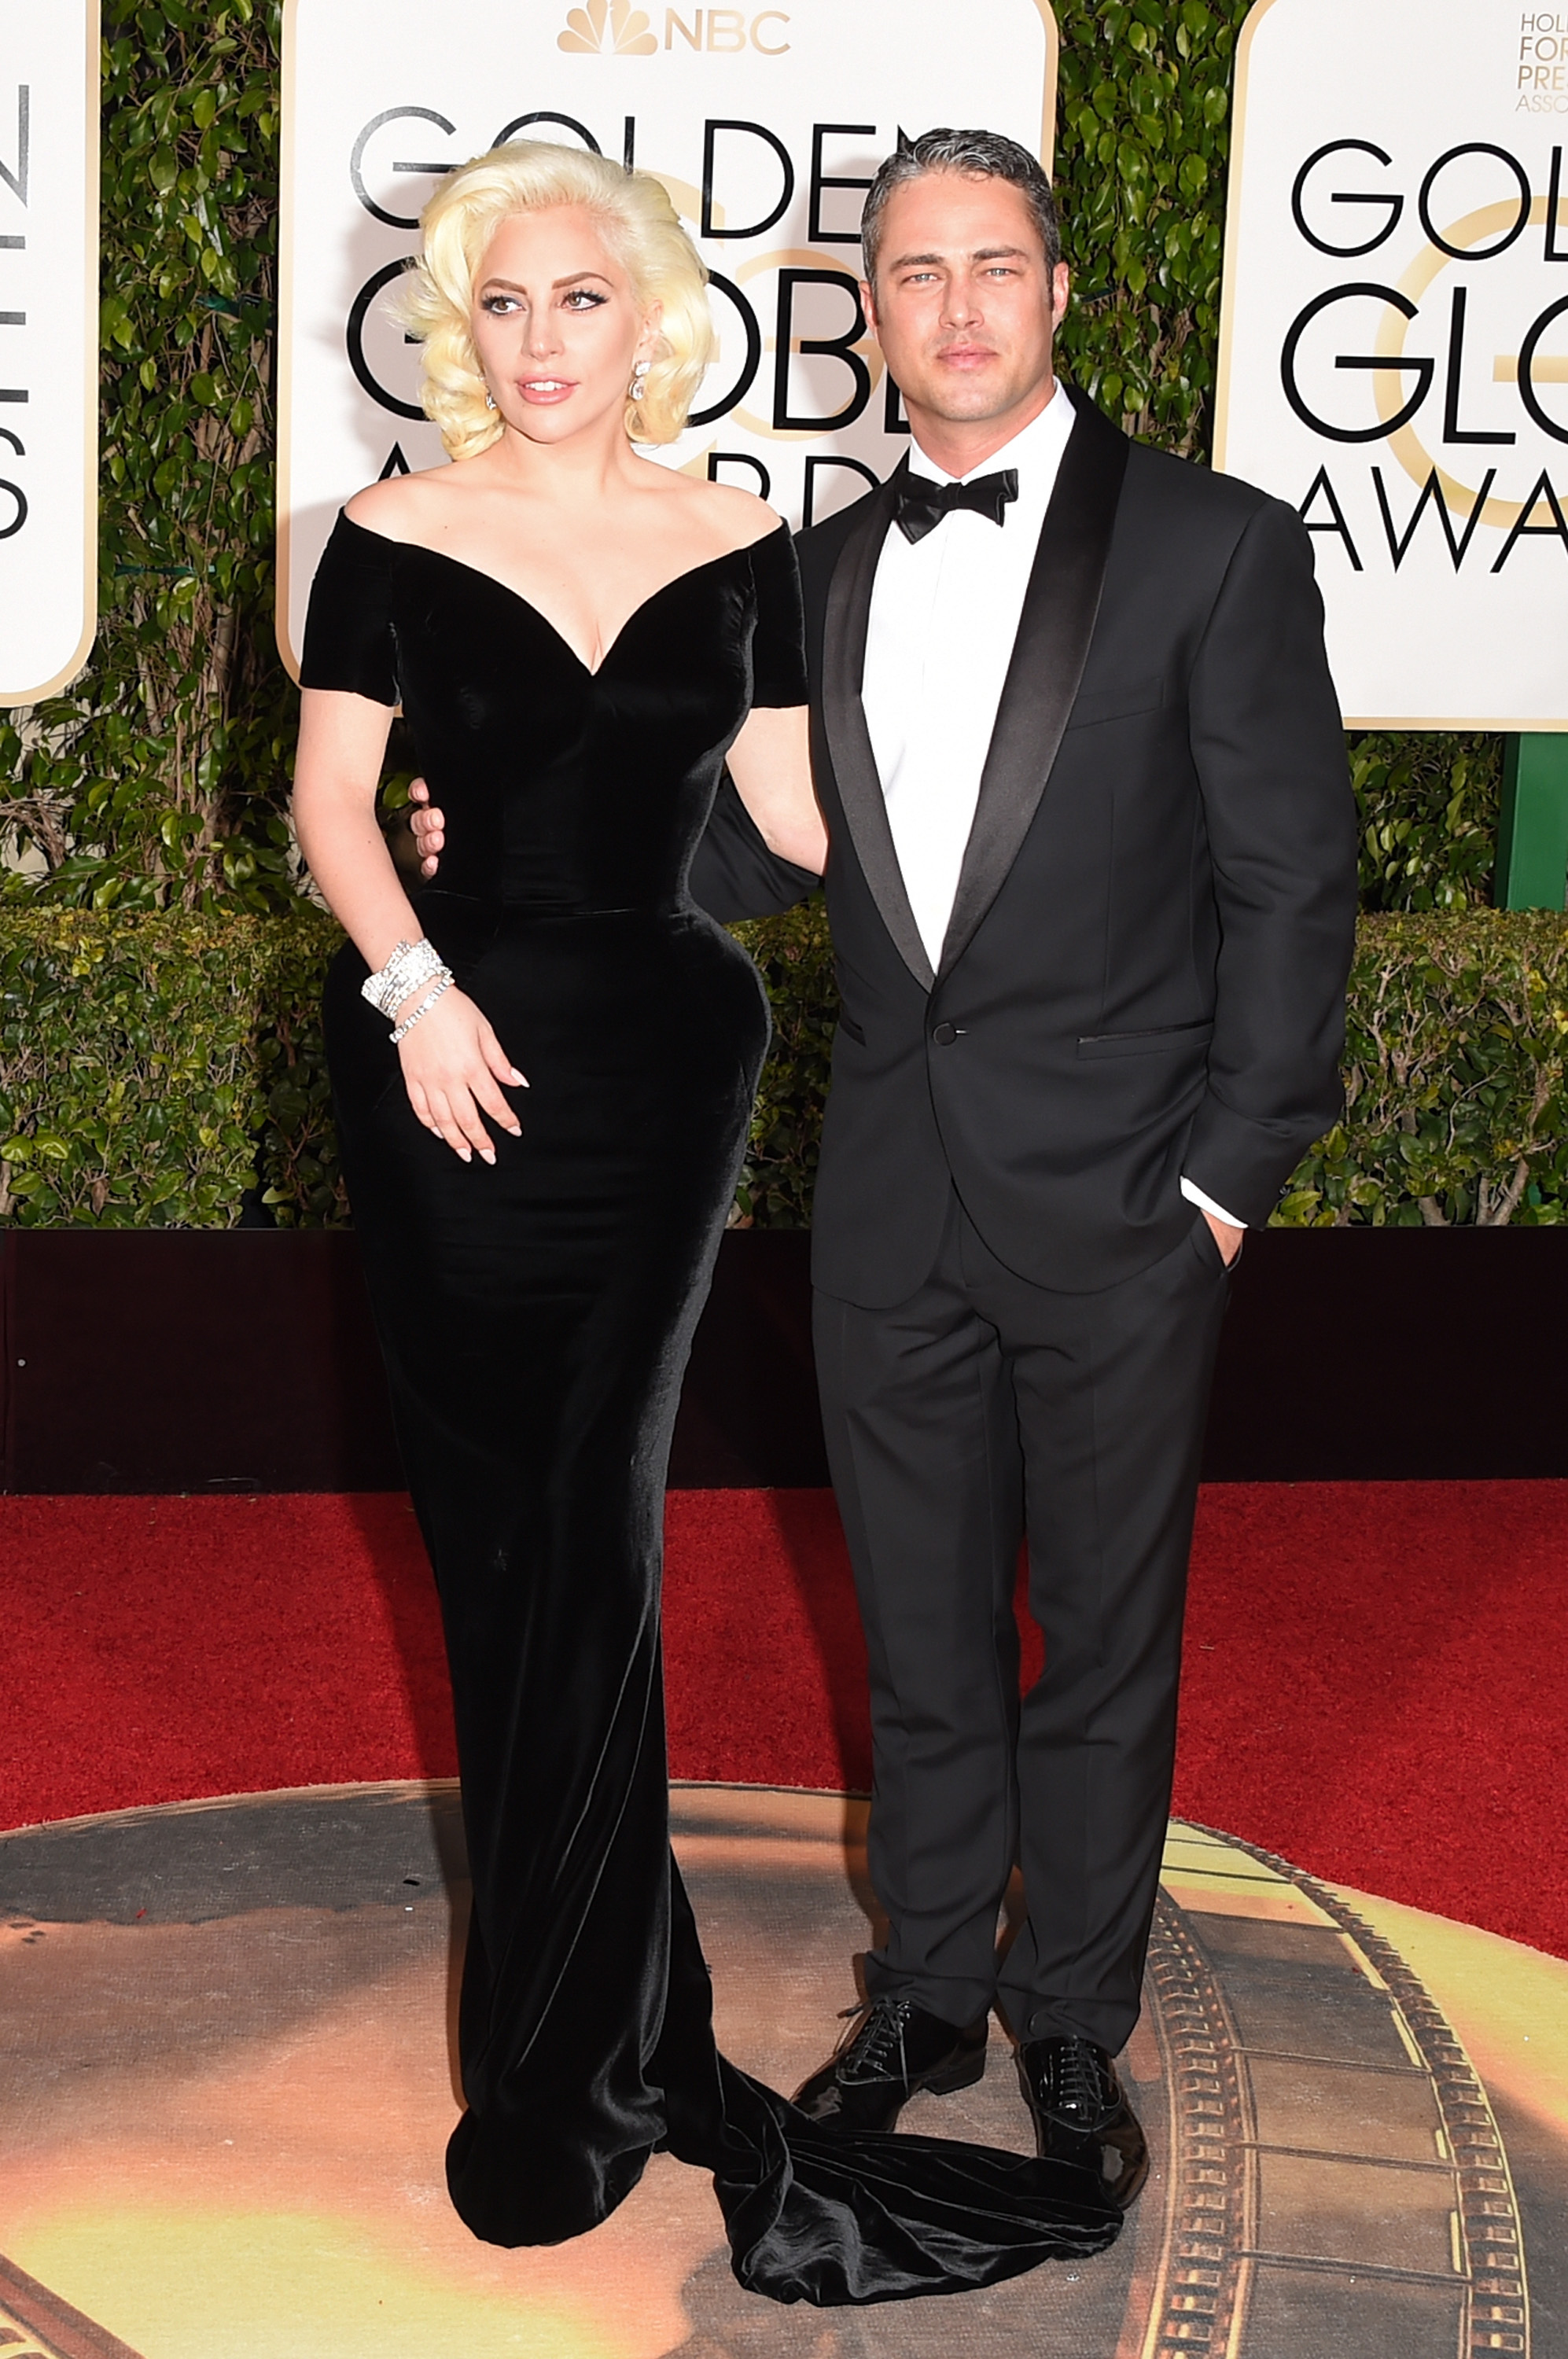 Lady Gaga and Taylor Kinney arrive to the 73rd Annual Golden Globe Awards on Jan. 10, 2016 in Beverly Hills.